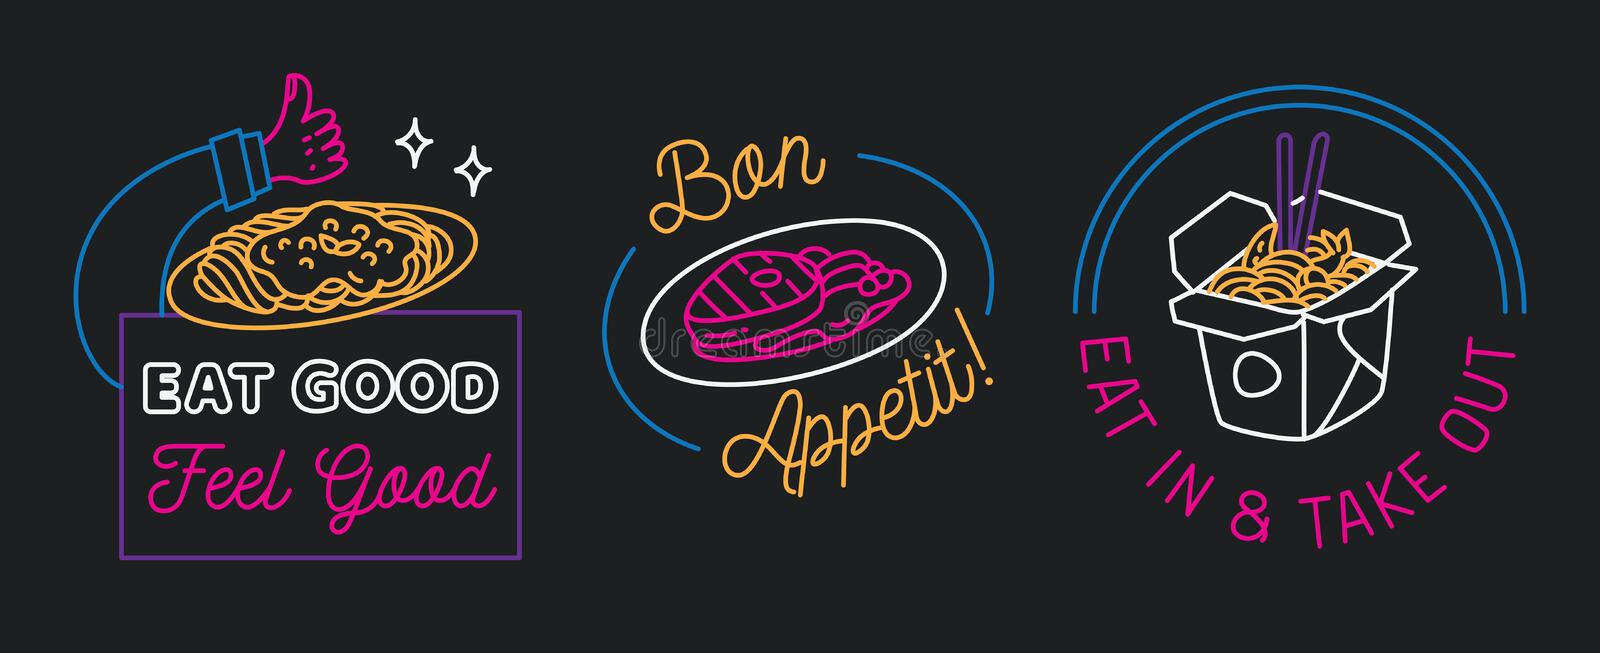 Restaurant sign in line style vector. Can be use as neon sign, poster etx royalty free illustration